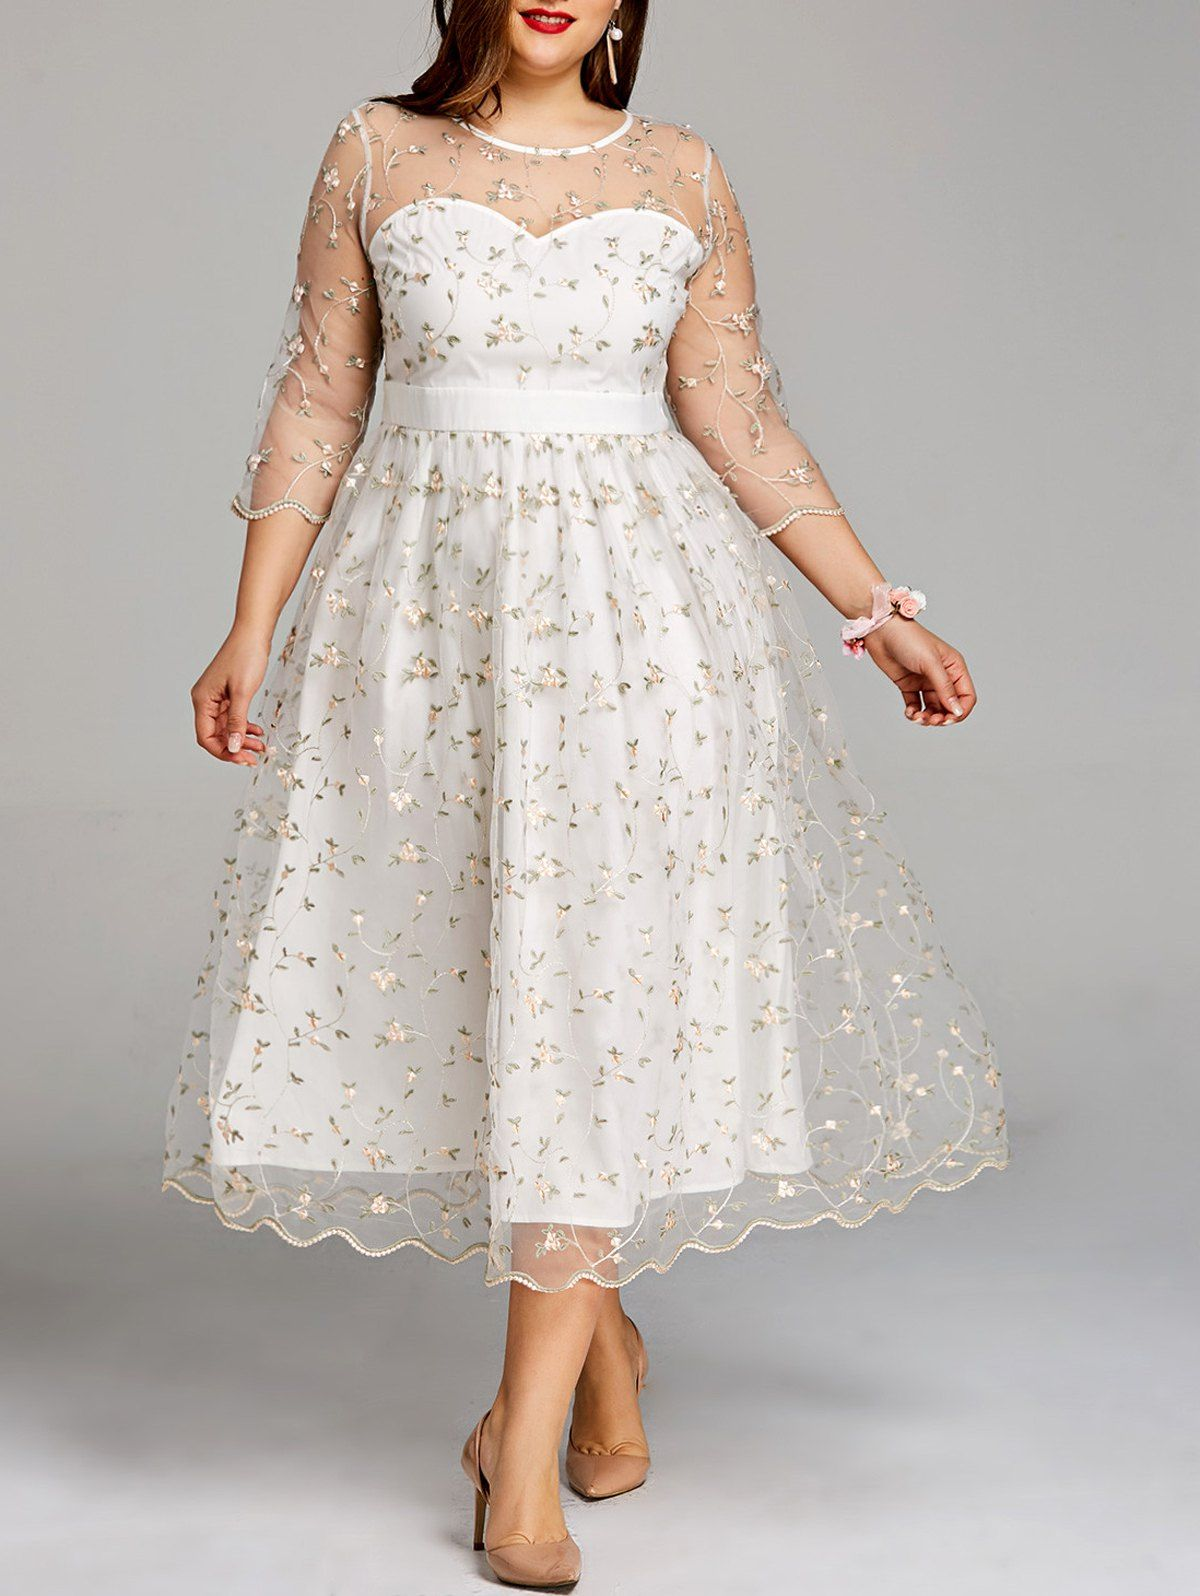 Pioneer wedding dresses  Plus Size Embroidery Floral Midi Tulle Dress  Dresses for Cindy